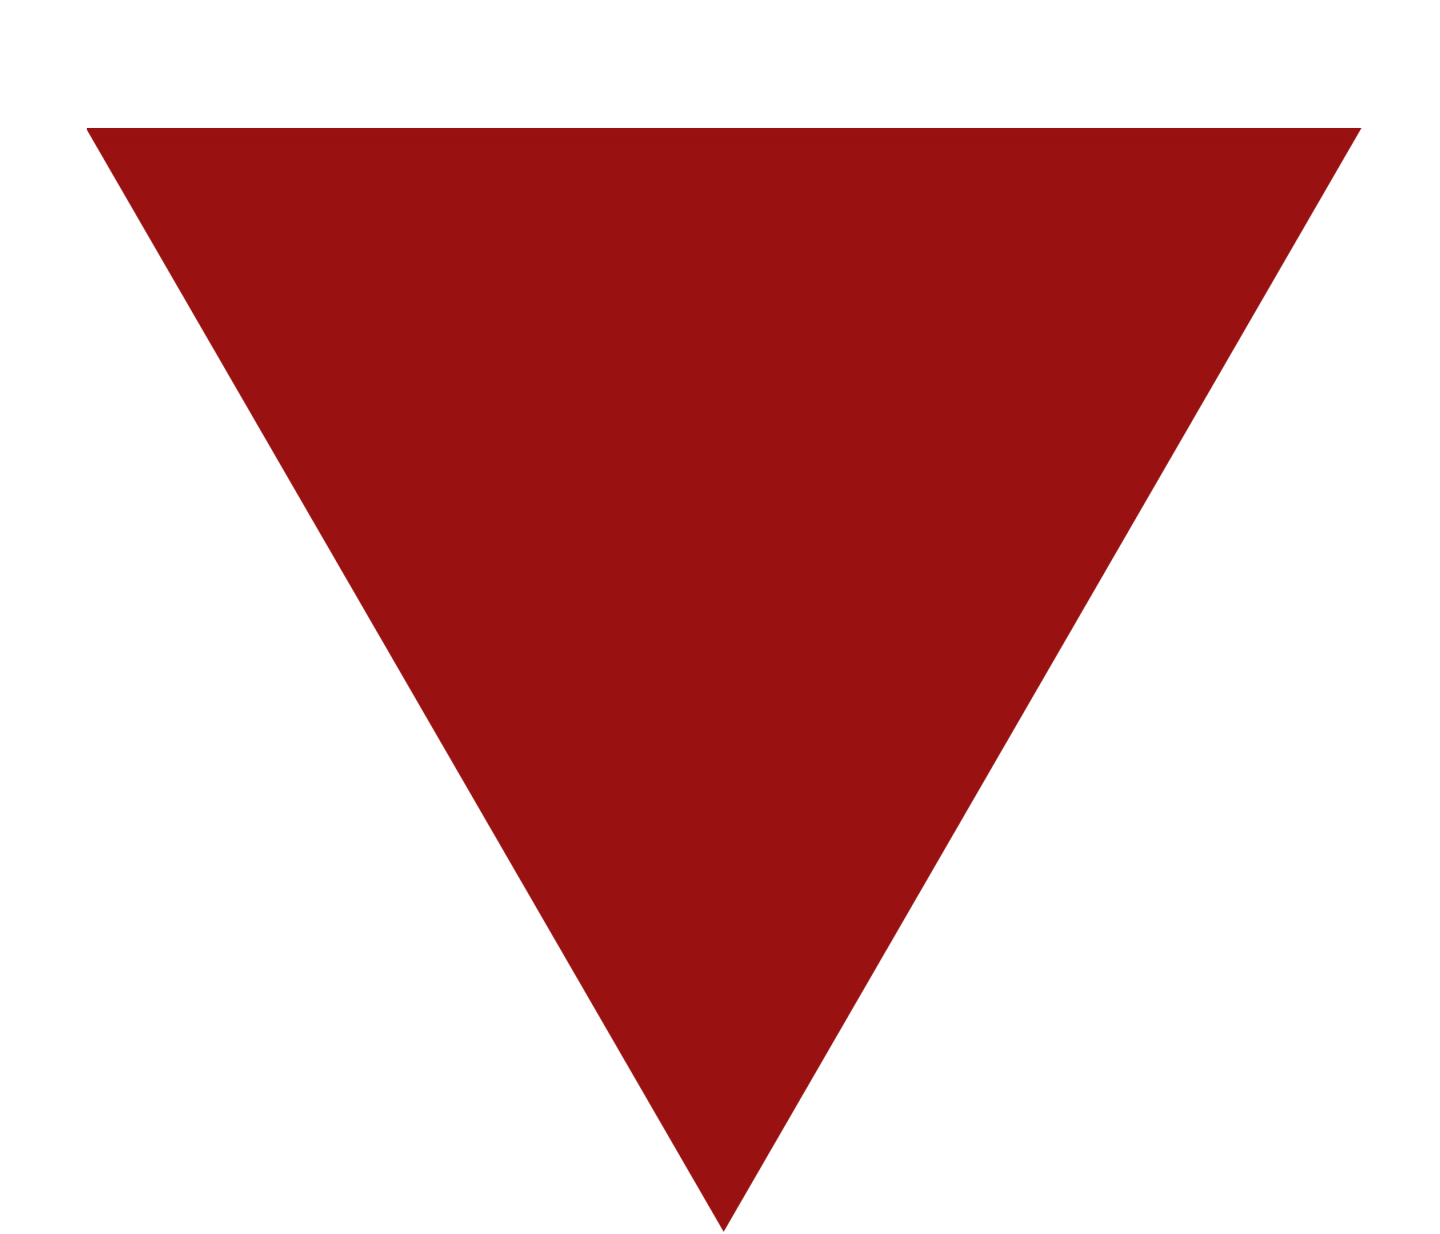 Red Triangle_1